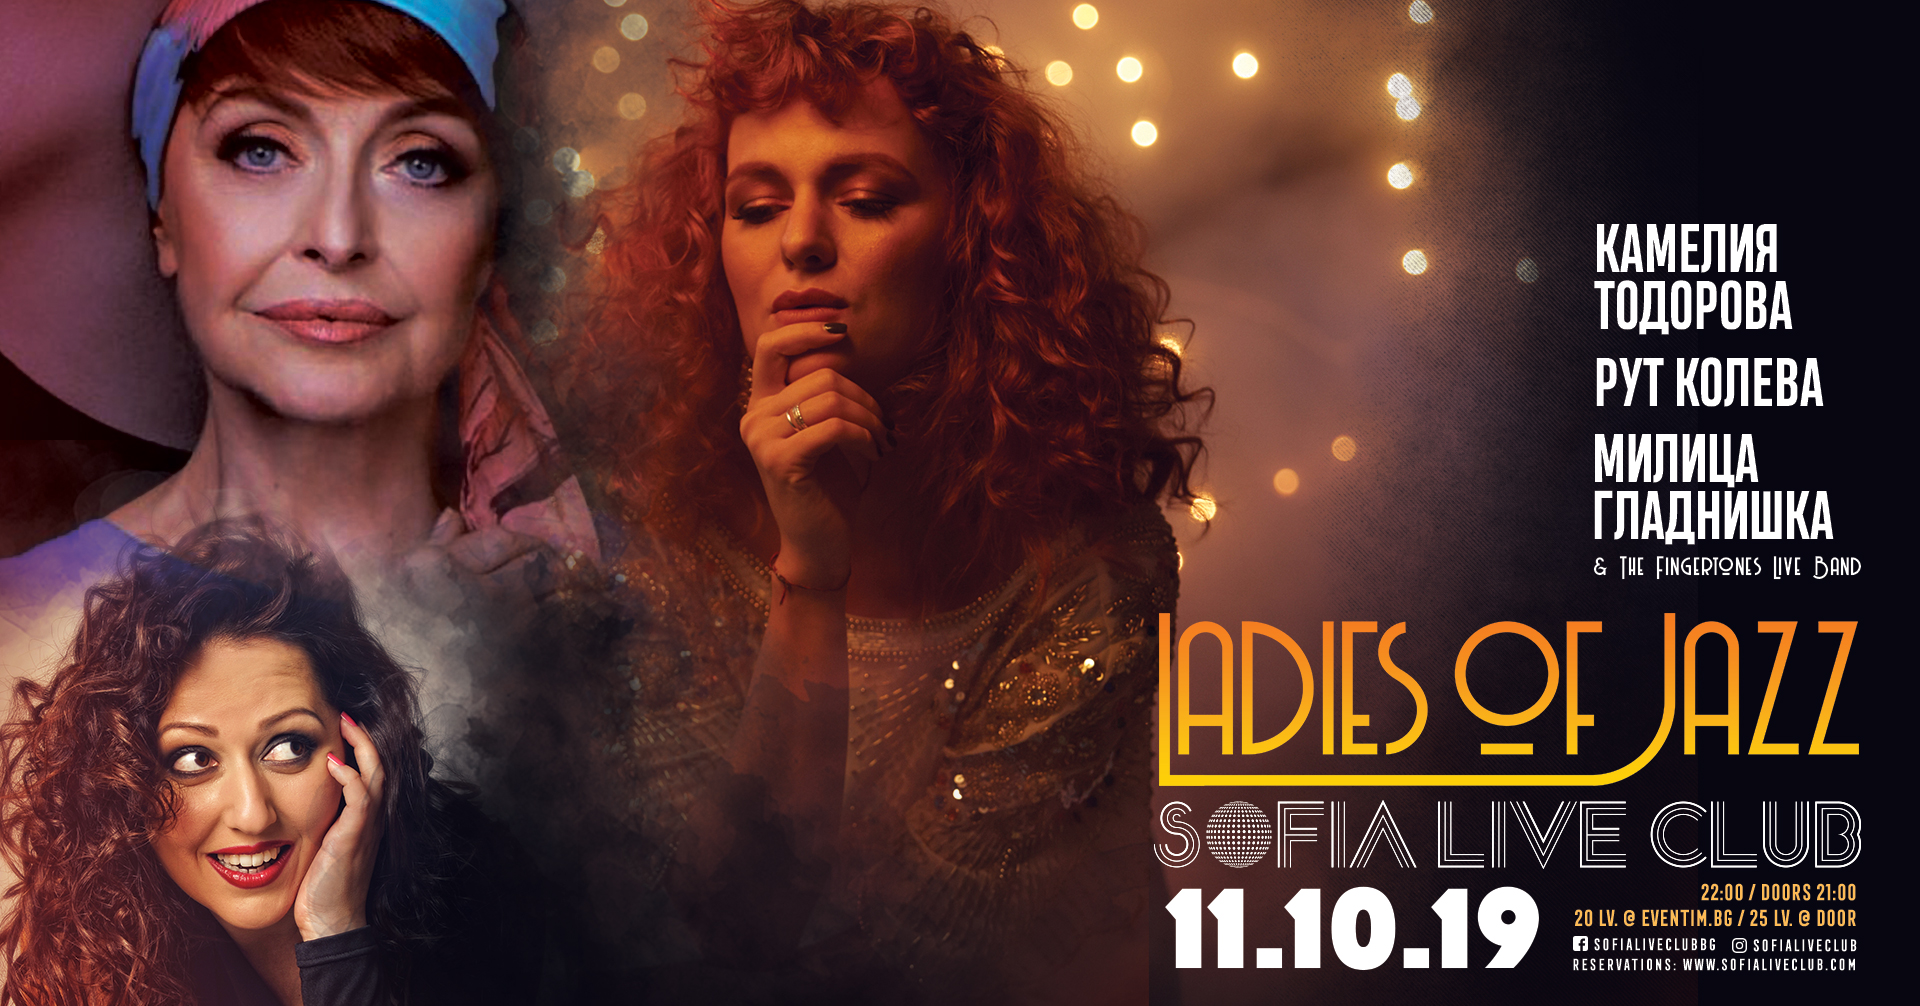 LADIES OF JAZZ in Sofia Live Club